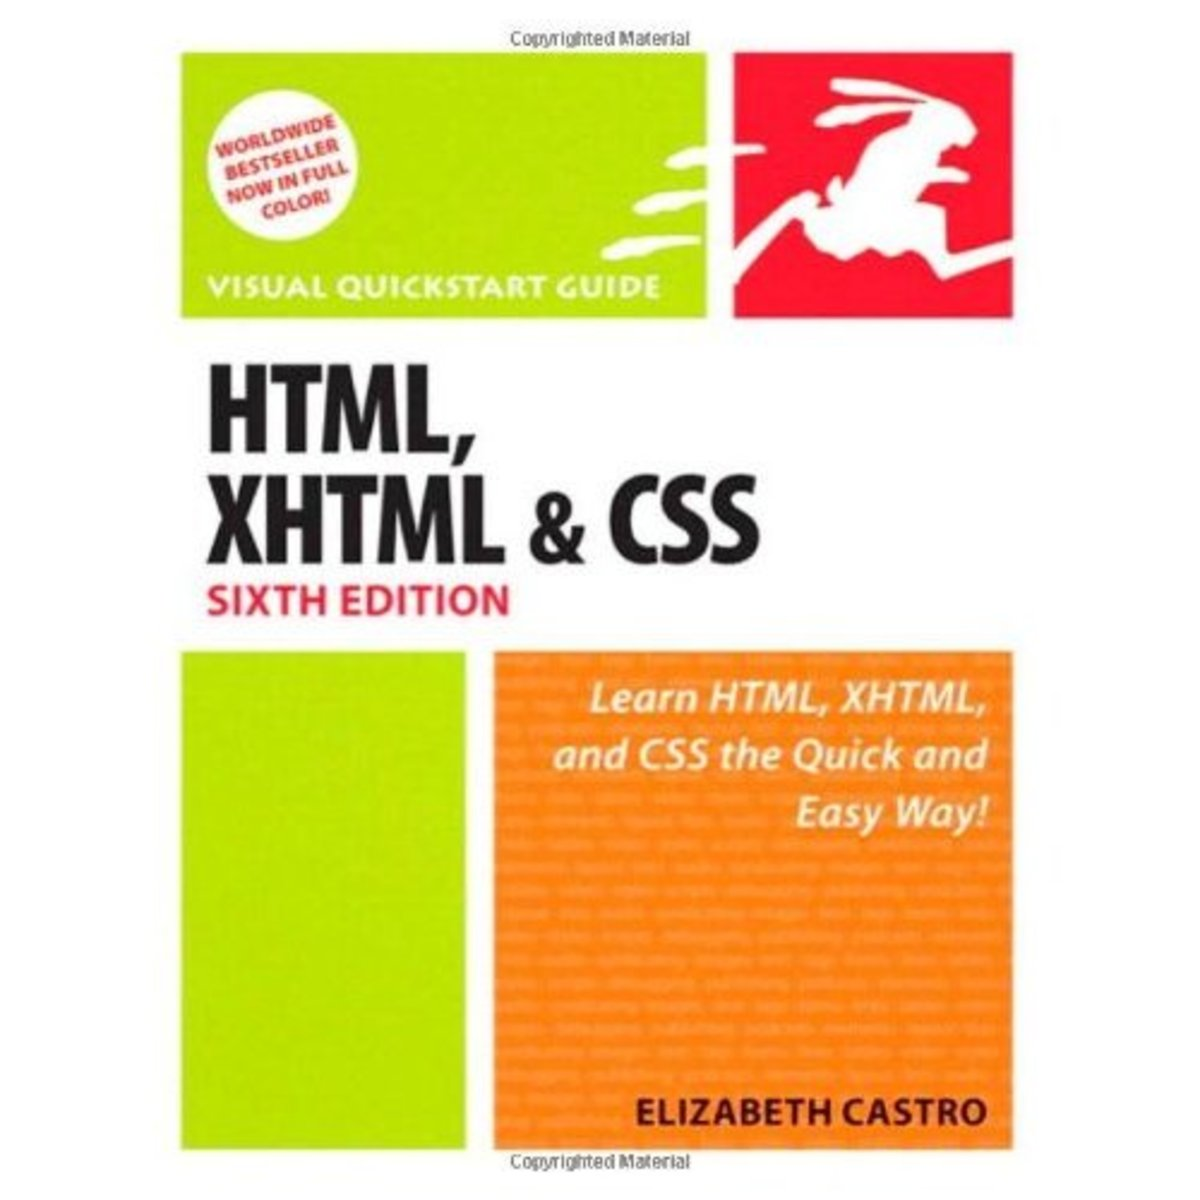 HTML, XHTML & CSS by Elizabeth Castro